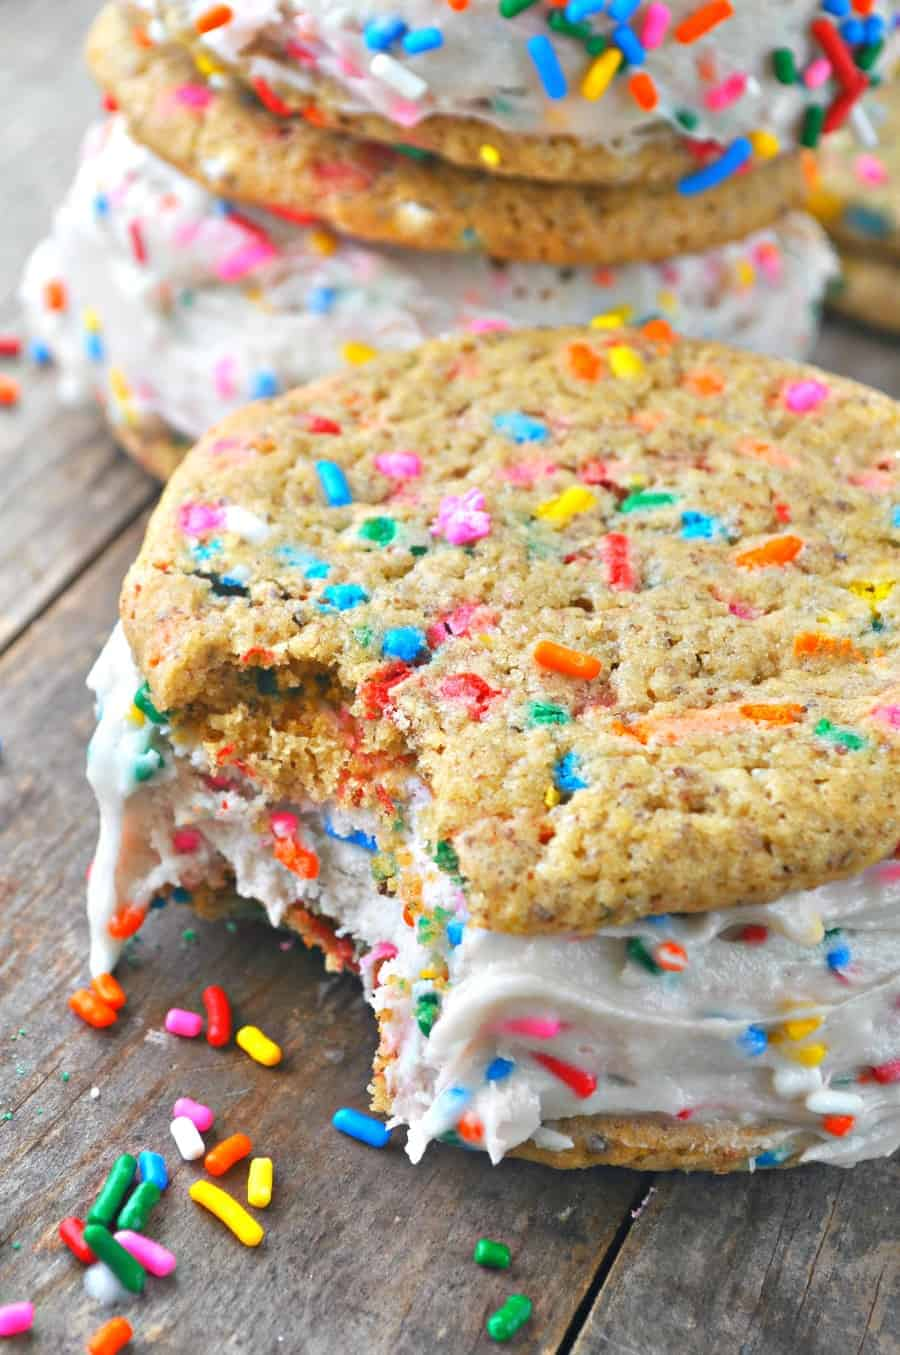 Ice Cream Sandwiches Are The Greatest Thing Ever Invented I Think We All Have To Agree This Cake Batter Is Made With Coconut Milk And Mix